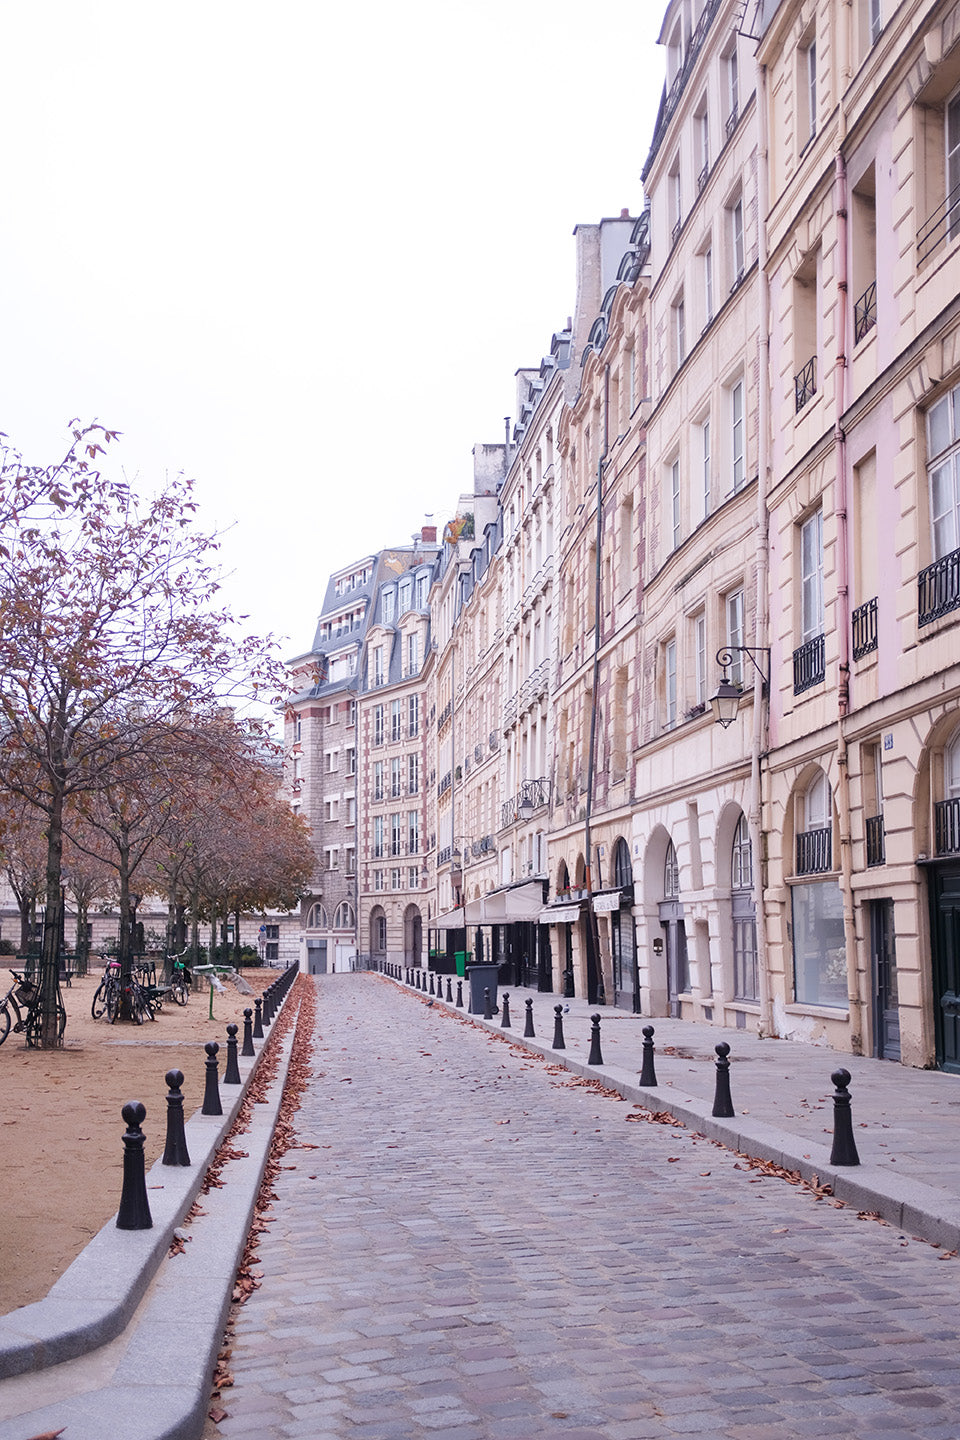 Fall in Place Dauphine - Every Day Paris